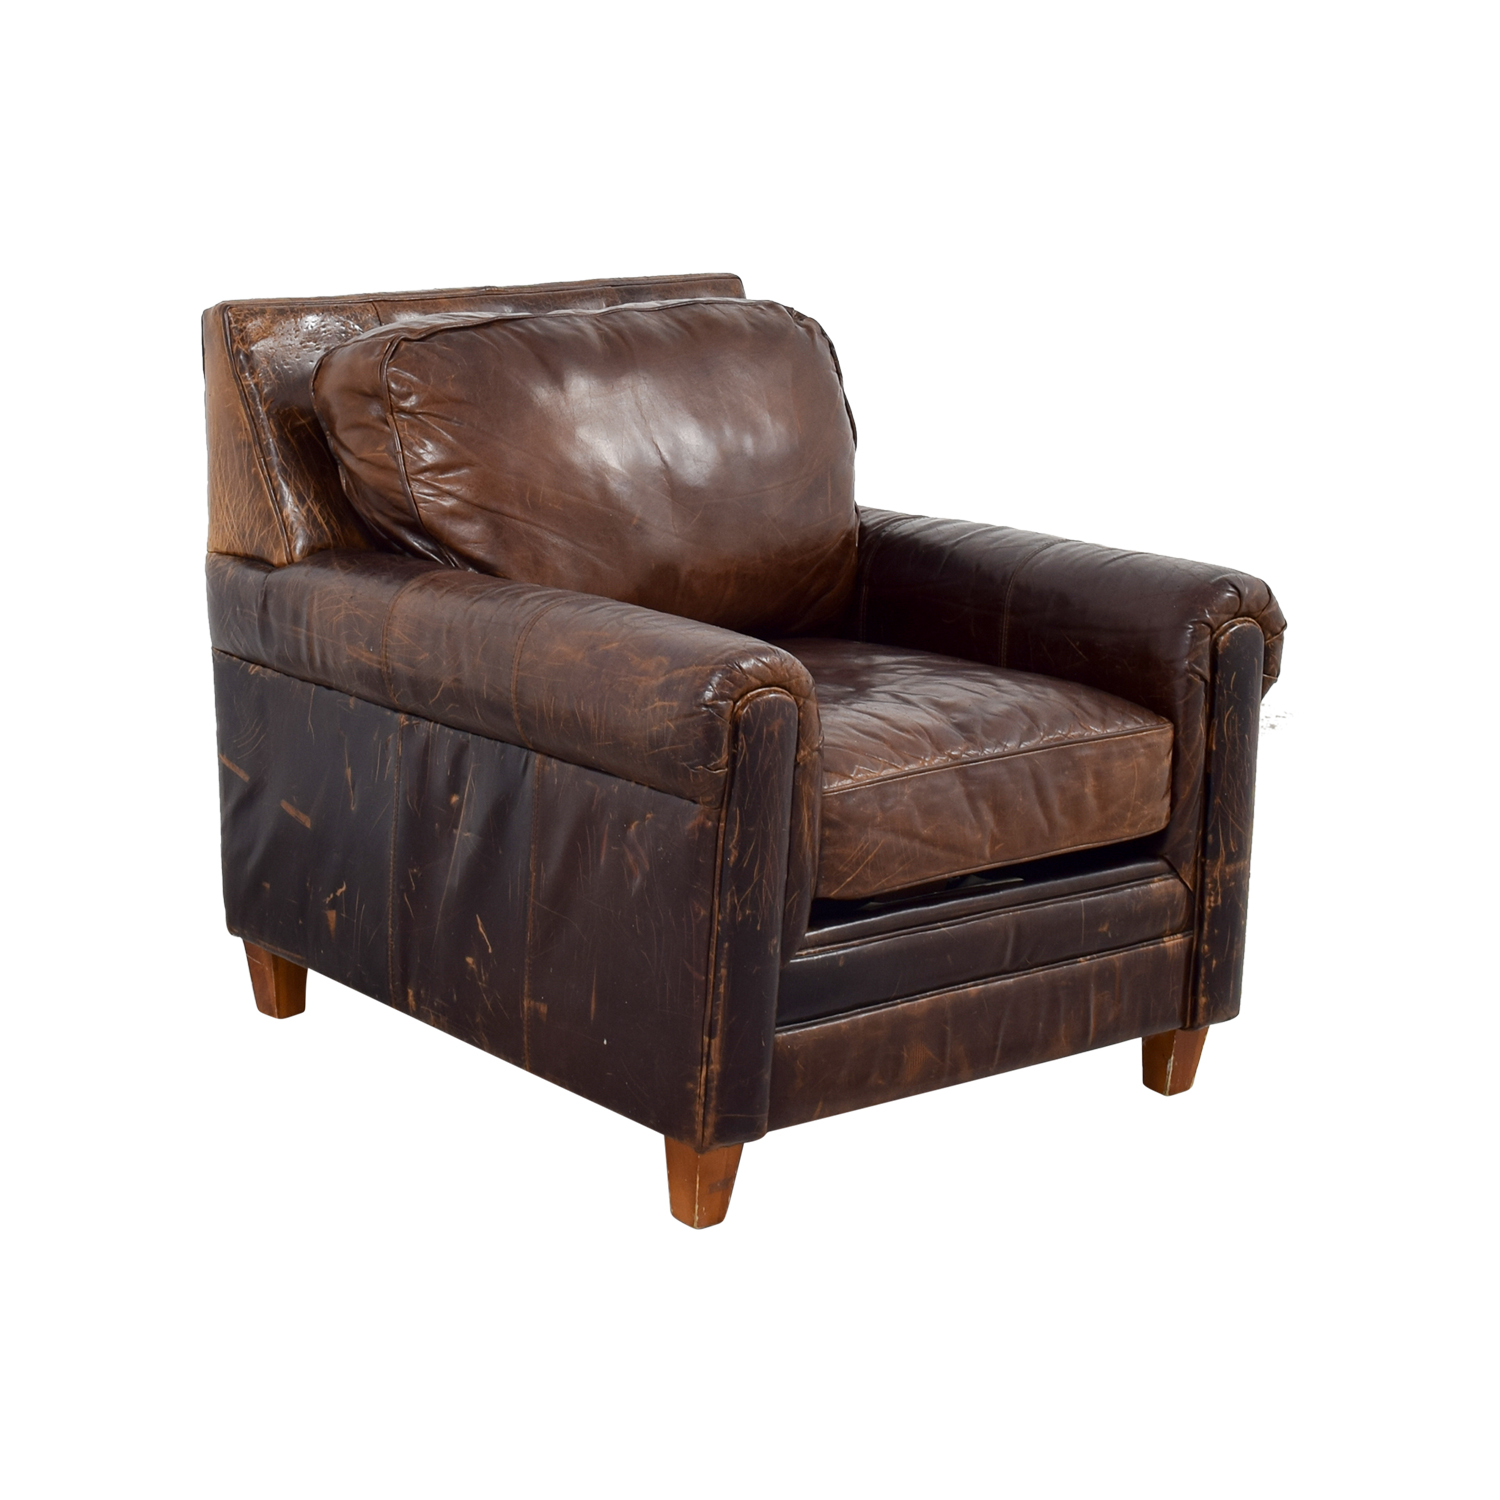 ... Buy Jennifer Convertibles Leather Arm Chair Jennifer Convertibles  Accent Chairs ...